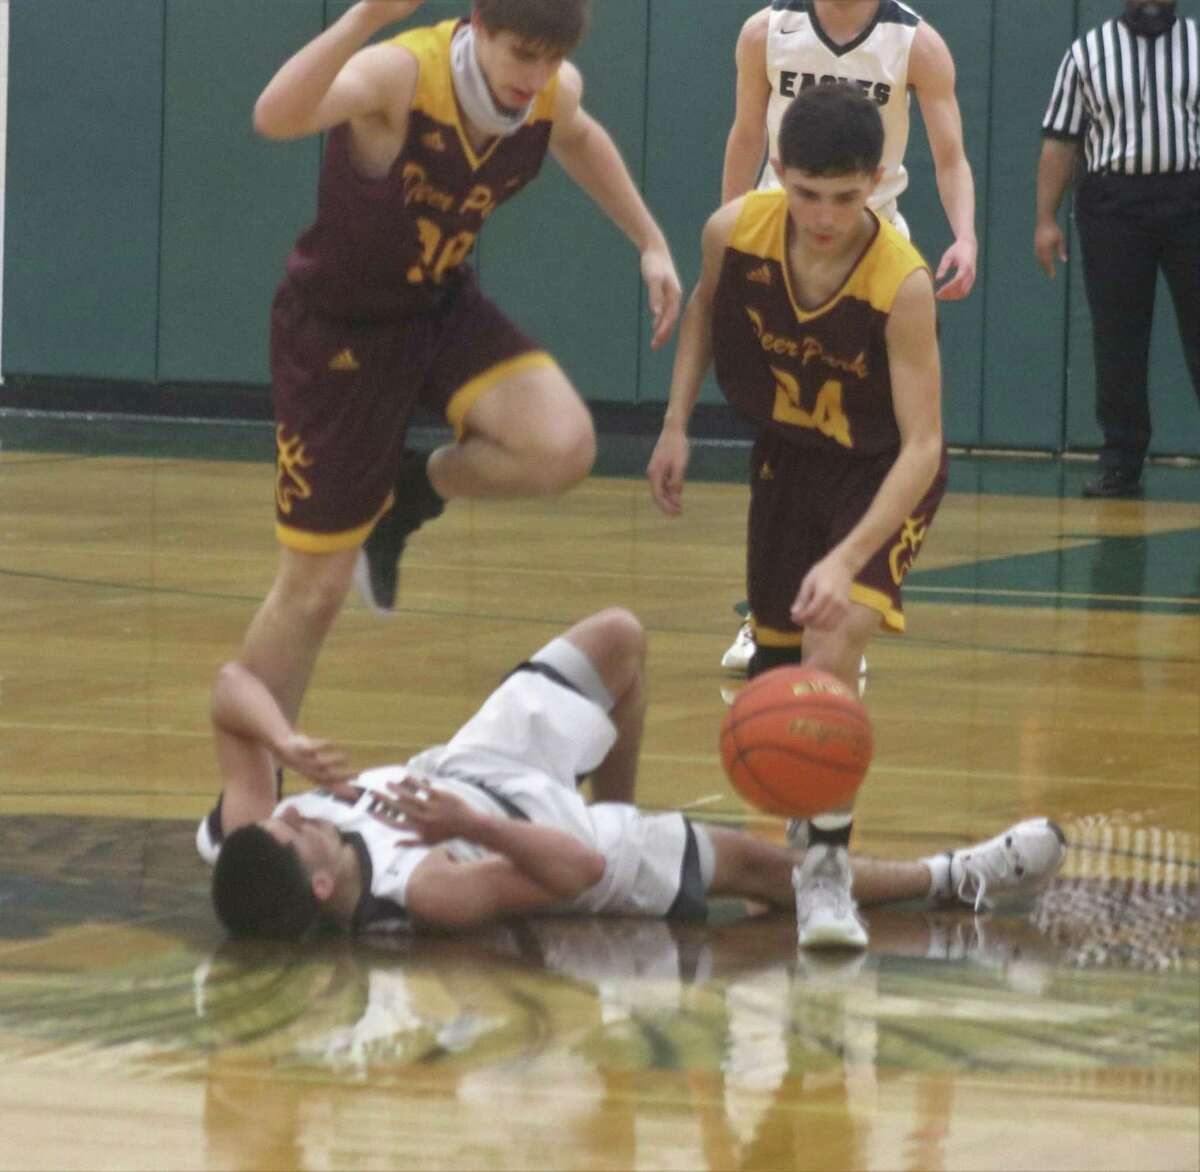 Deer Park's Garrett Topping and Andrew Aguilar try to avoid Pasadena's Kanye Ortiz after Ortiz was fouled with 1:28 remaining in Wednesday night's game and the Eagles up 42-36.